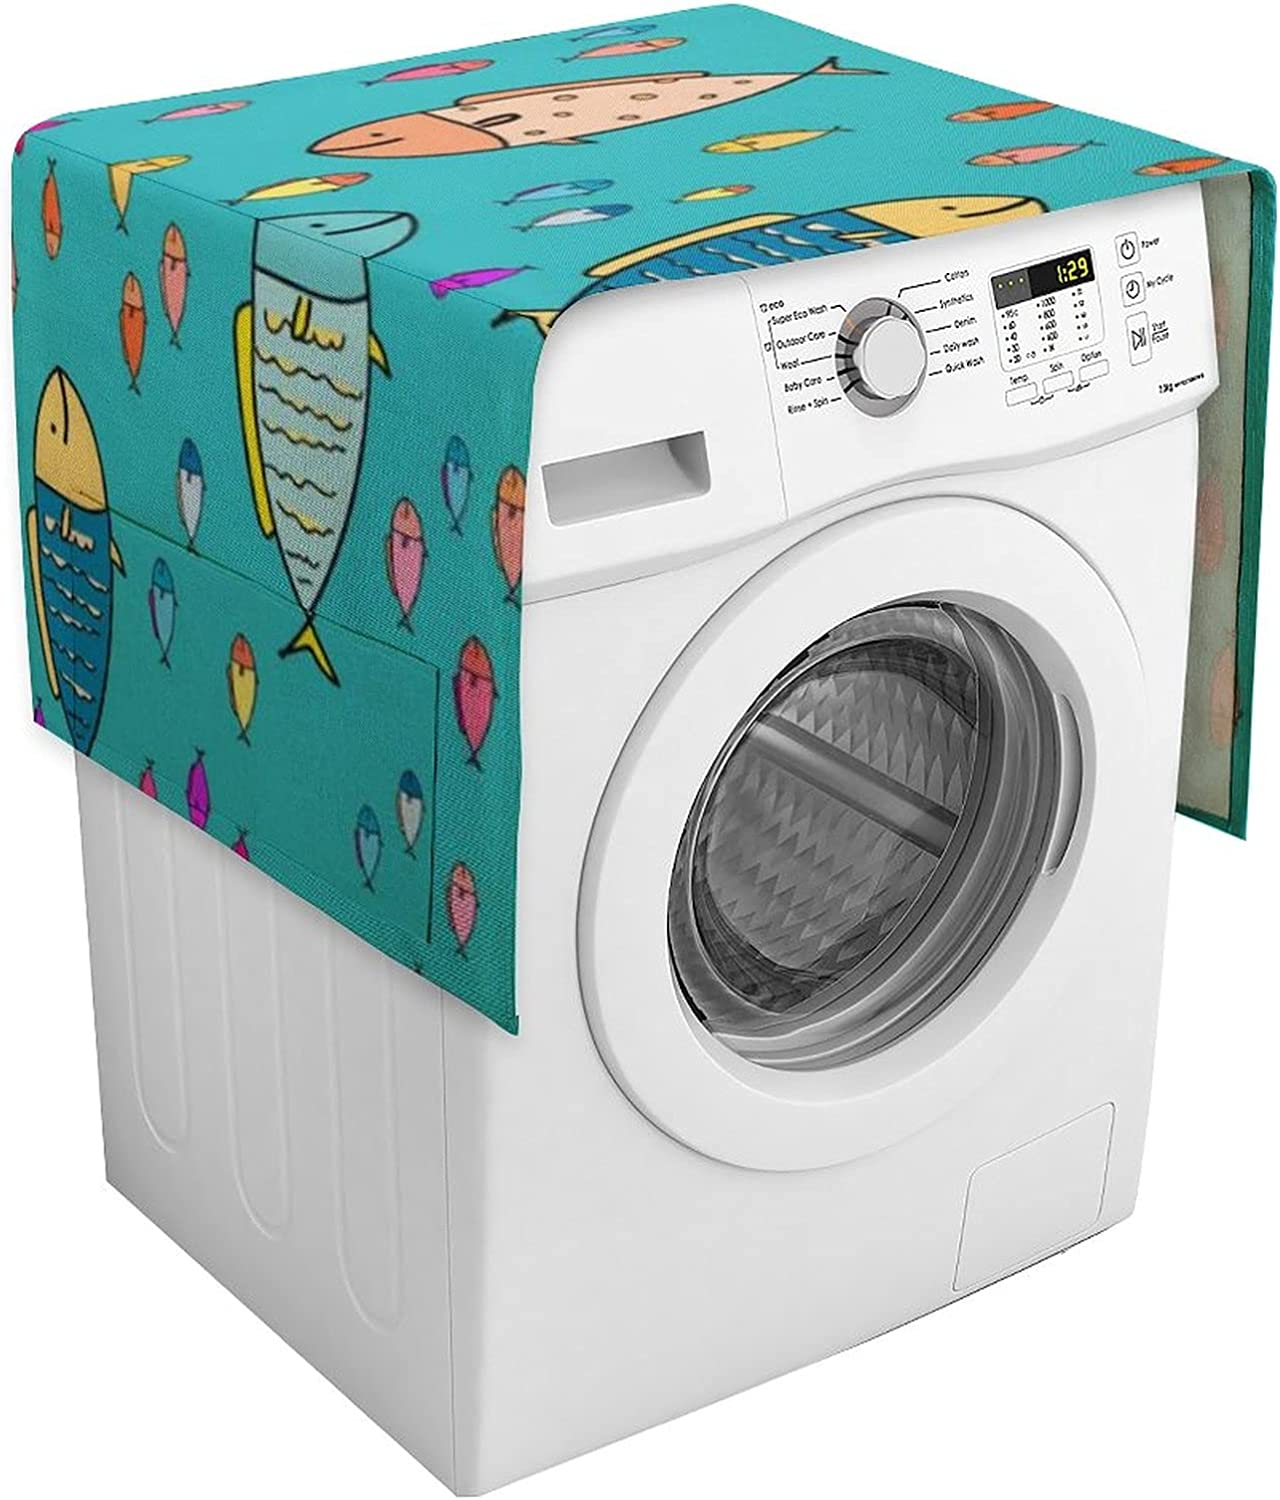 Ranking TOP3 Multi-Purpose At the price Washing Machine Covers Protector Appliance Washer